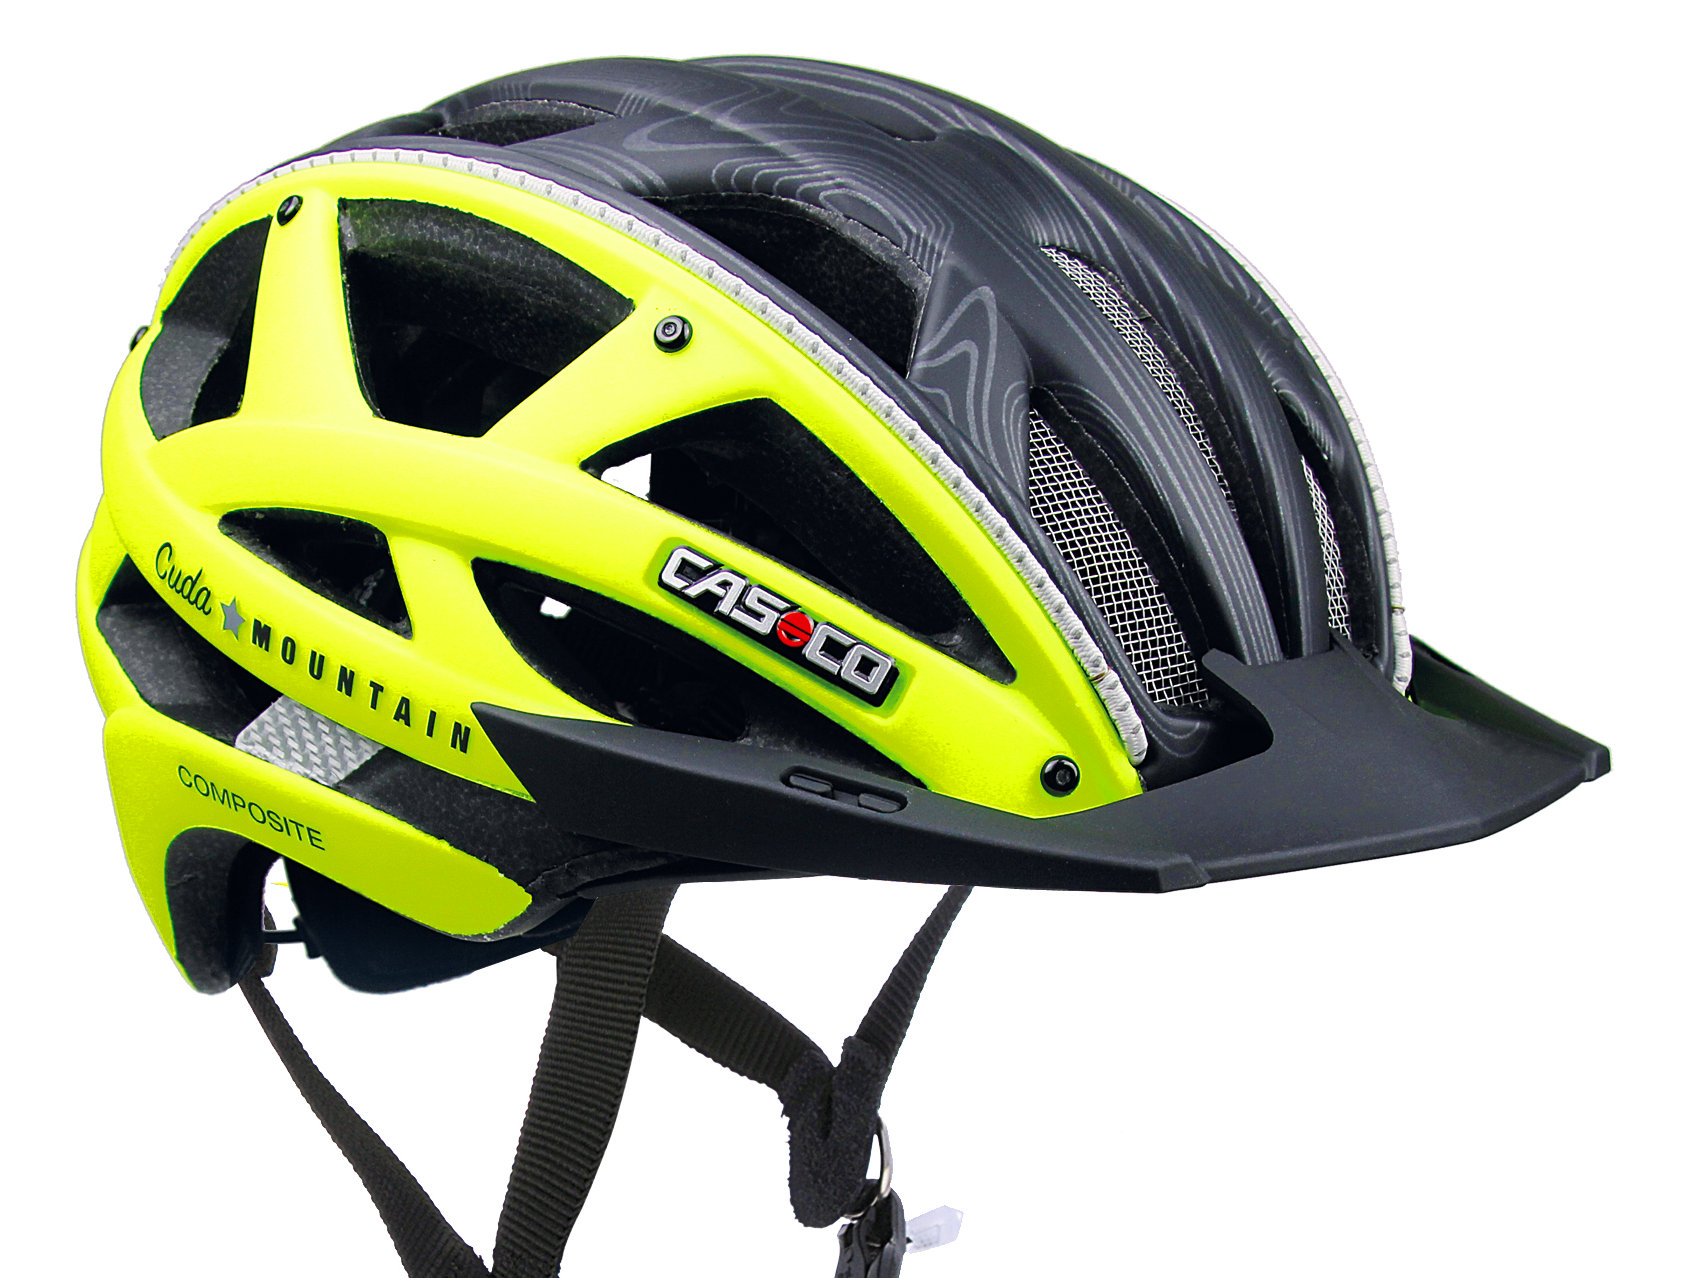 Casco_Cuda_mountain_black_neon